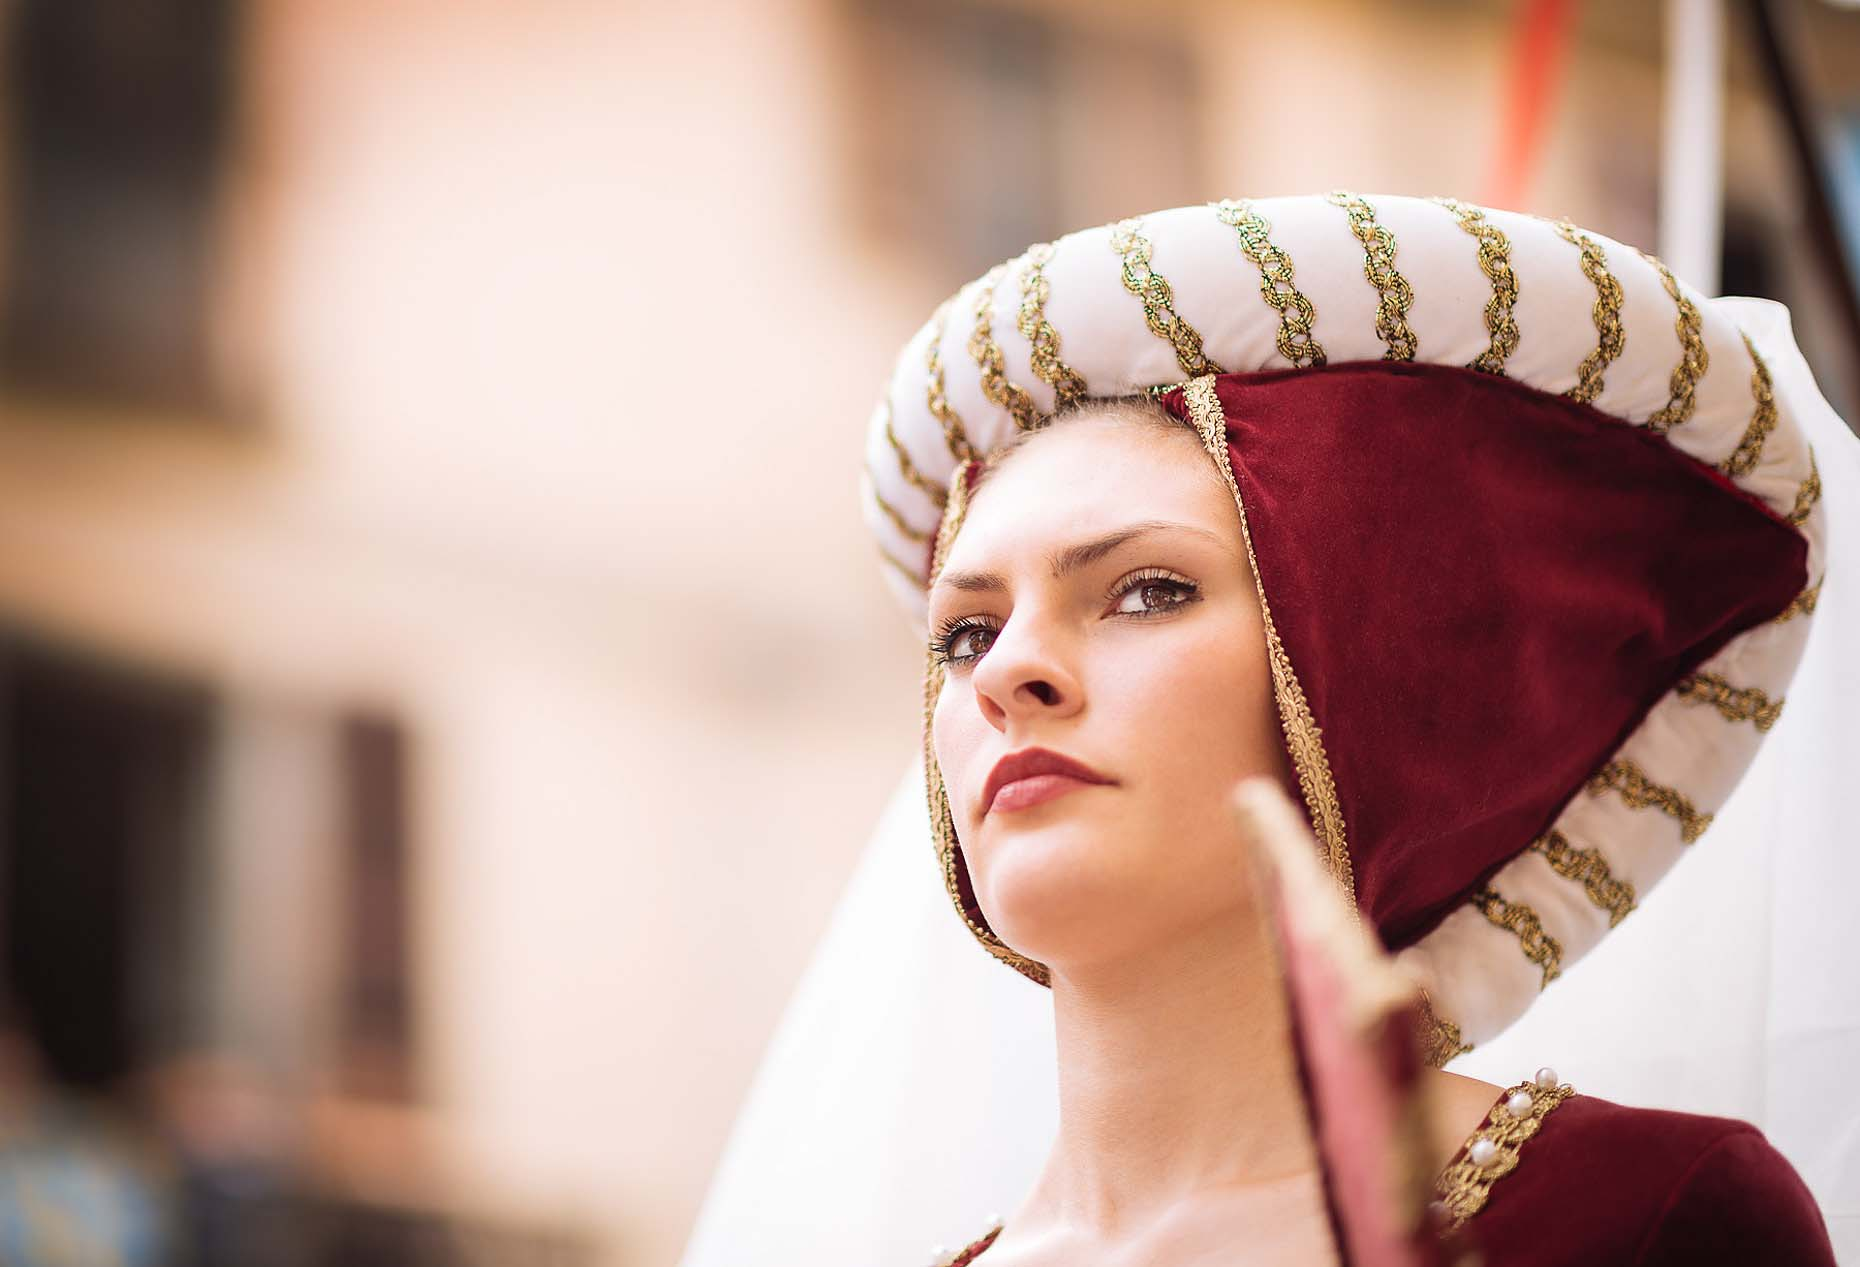 palio-asti-italy-beautiful-woman-costume-05